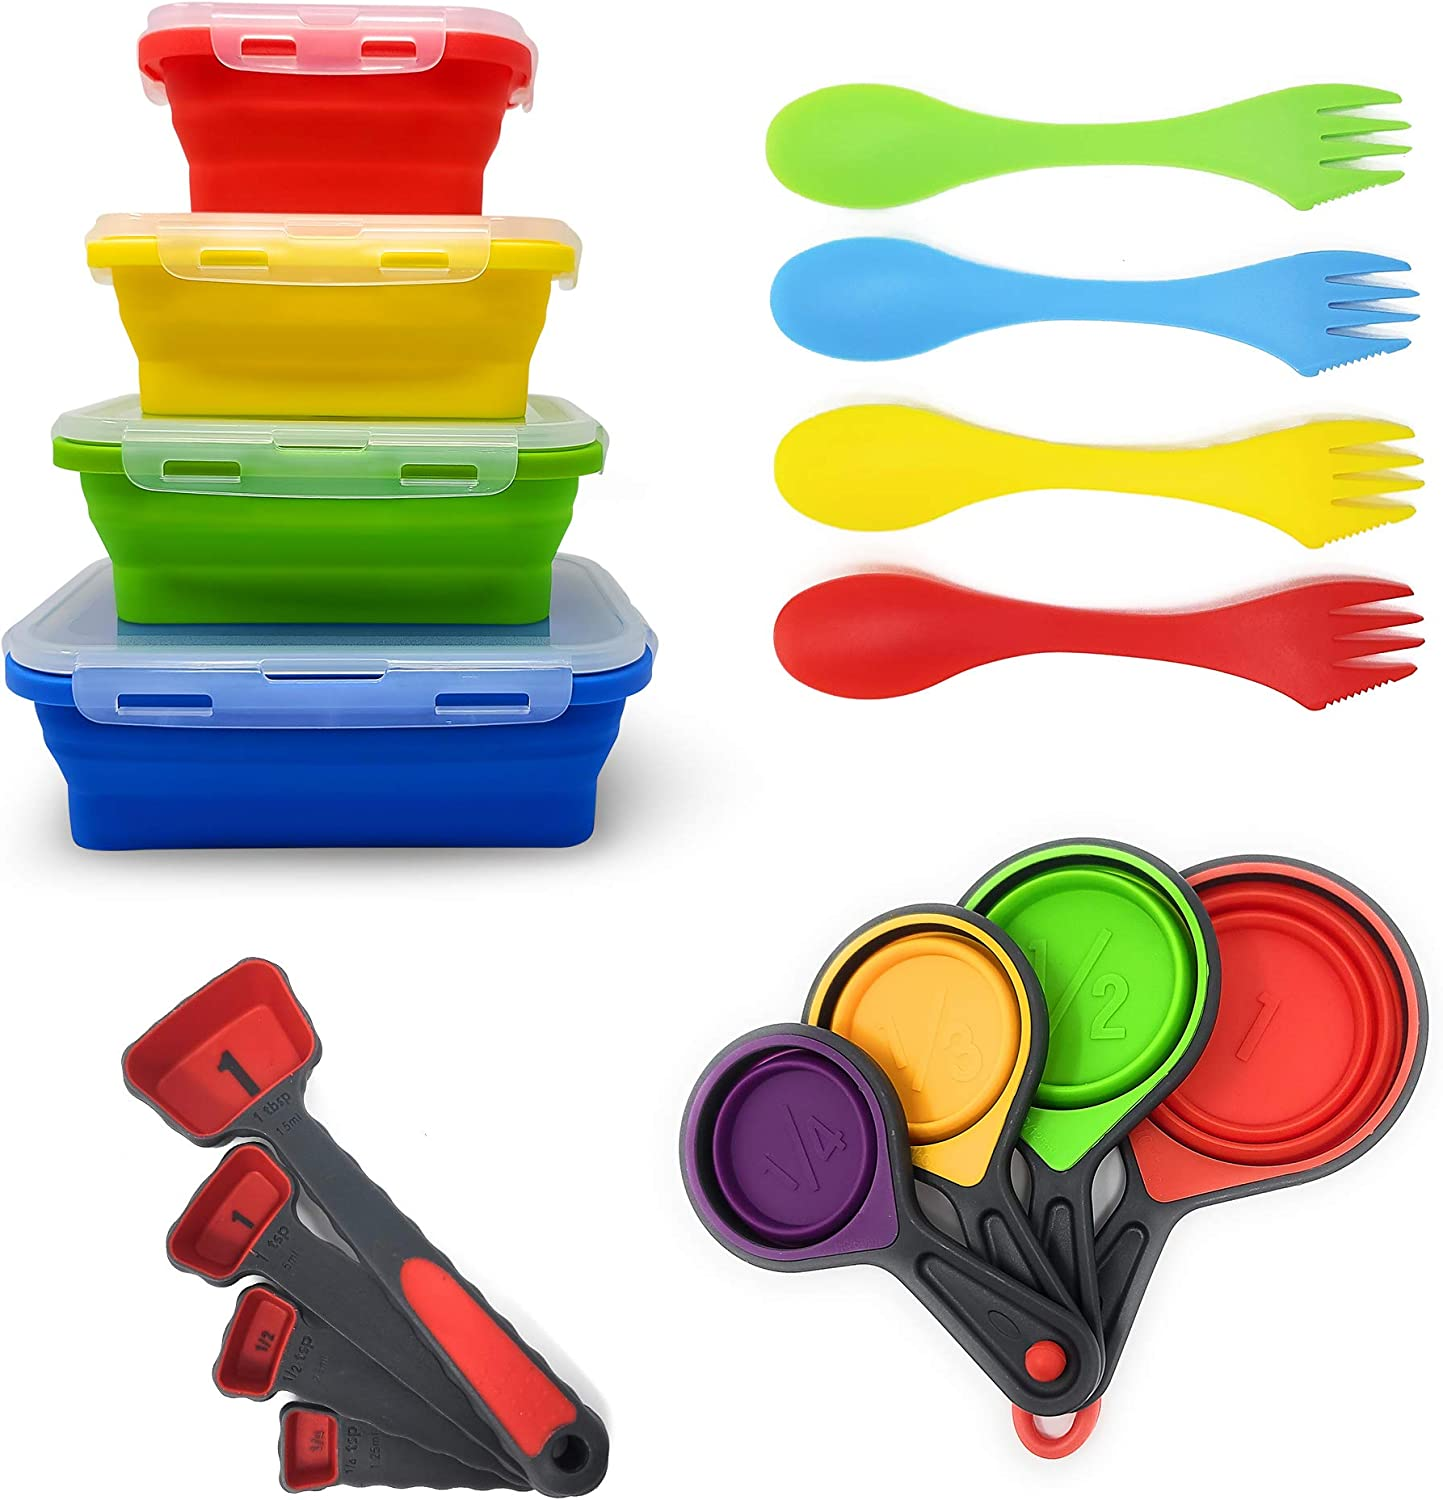 Collapsible Silicone Food Storage Containers by Silictek, Measuring Cups and Measuring Spoons | Food Grade Silicone Measurement Cup Set | Kitchen Utensils |BPA Free, Dishwasher and Freezer Safe.